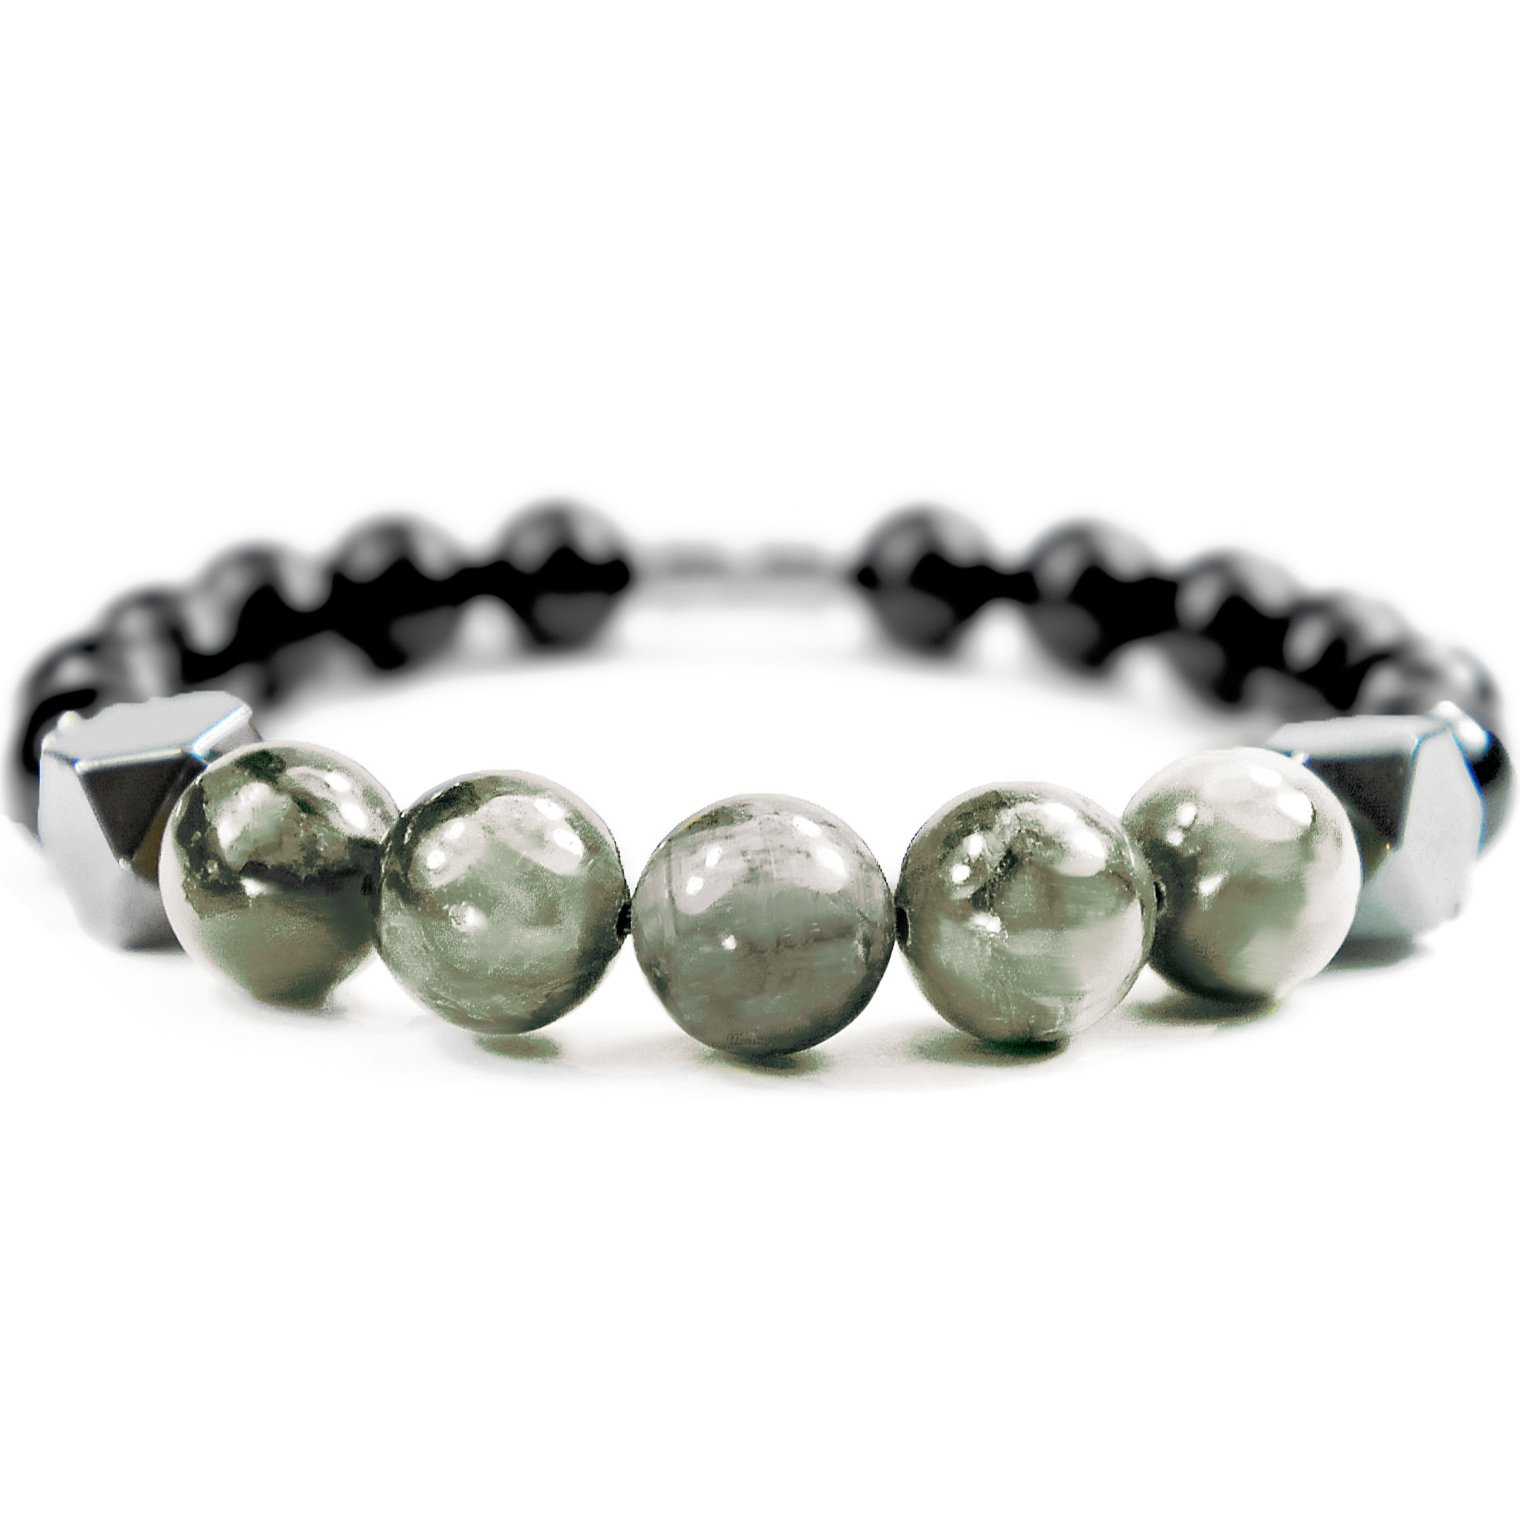 ONE ION Keeper's Eagle Eye Bracelet - Hematite Black Tourmaline Magnetic Clasp - 3 Sizes (7 Inches (6.5''-7.25'')) by ONE ION